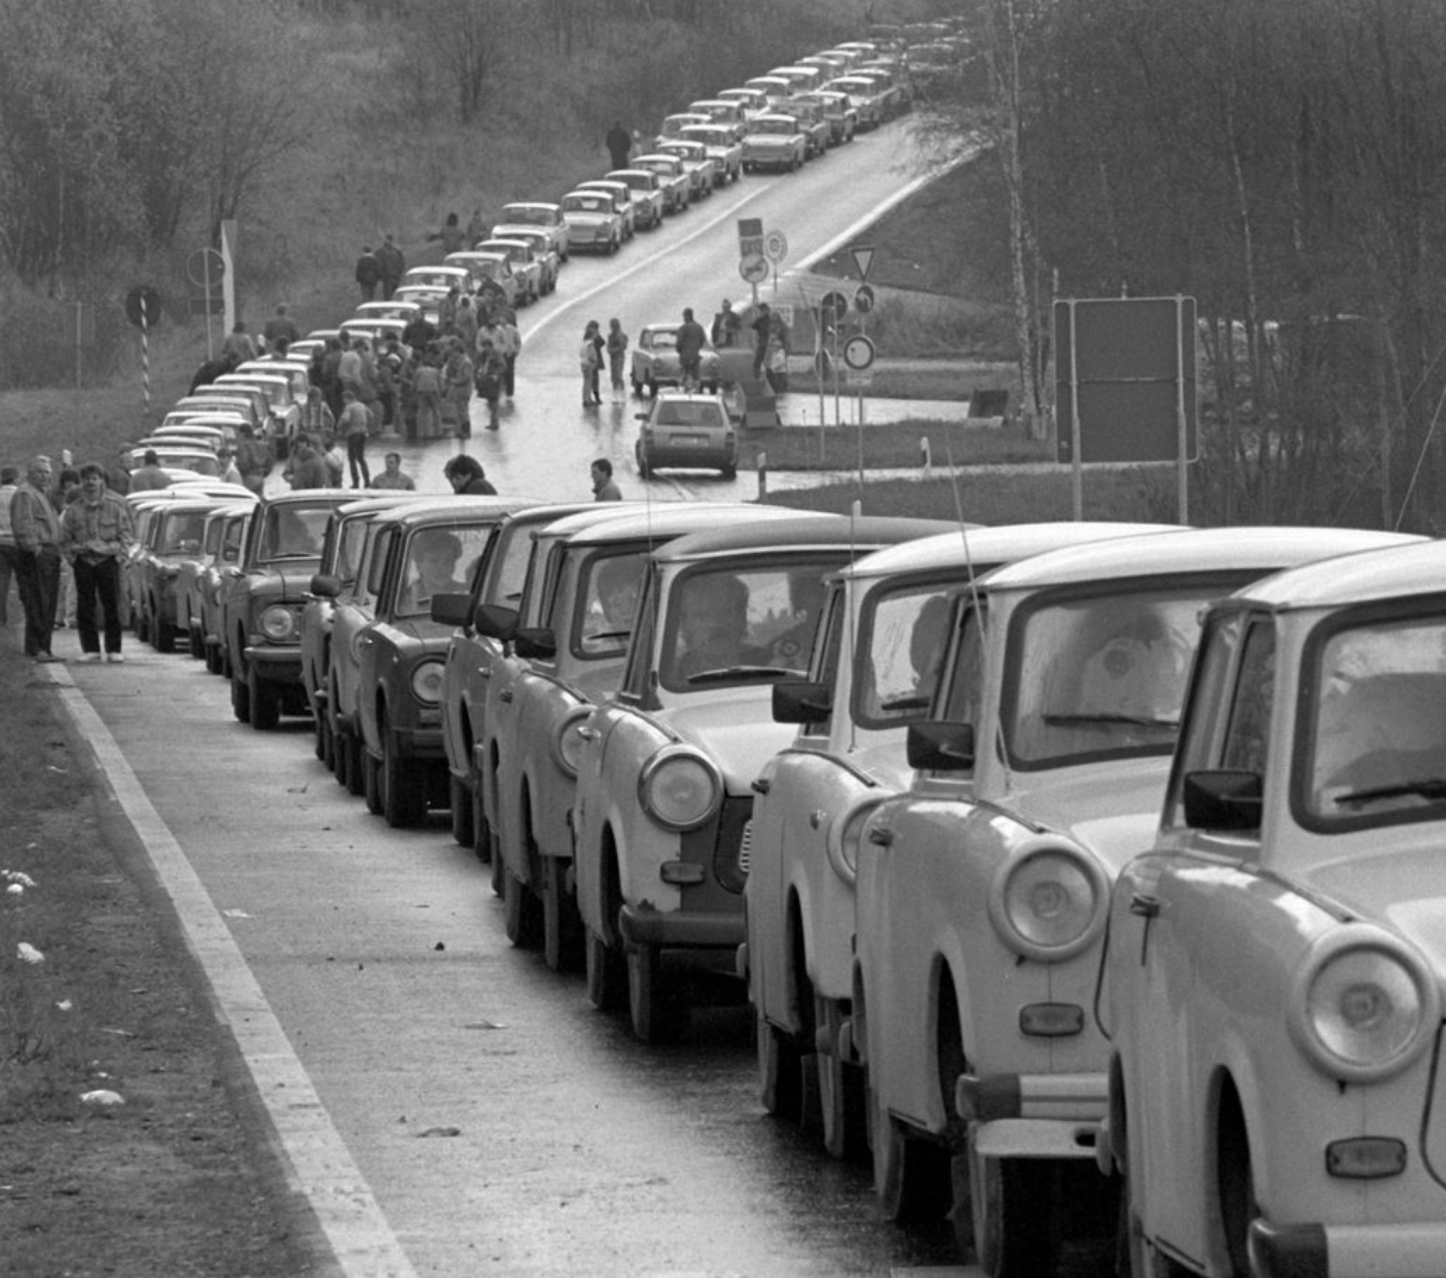 A traffic jam of Trabants on an Eastern German road